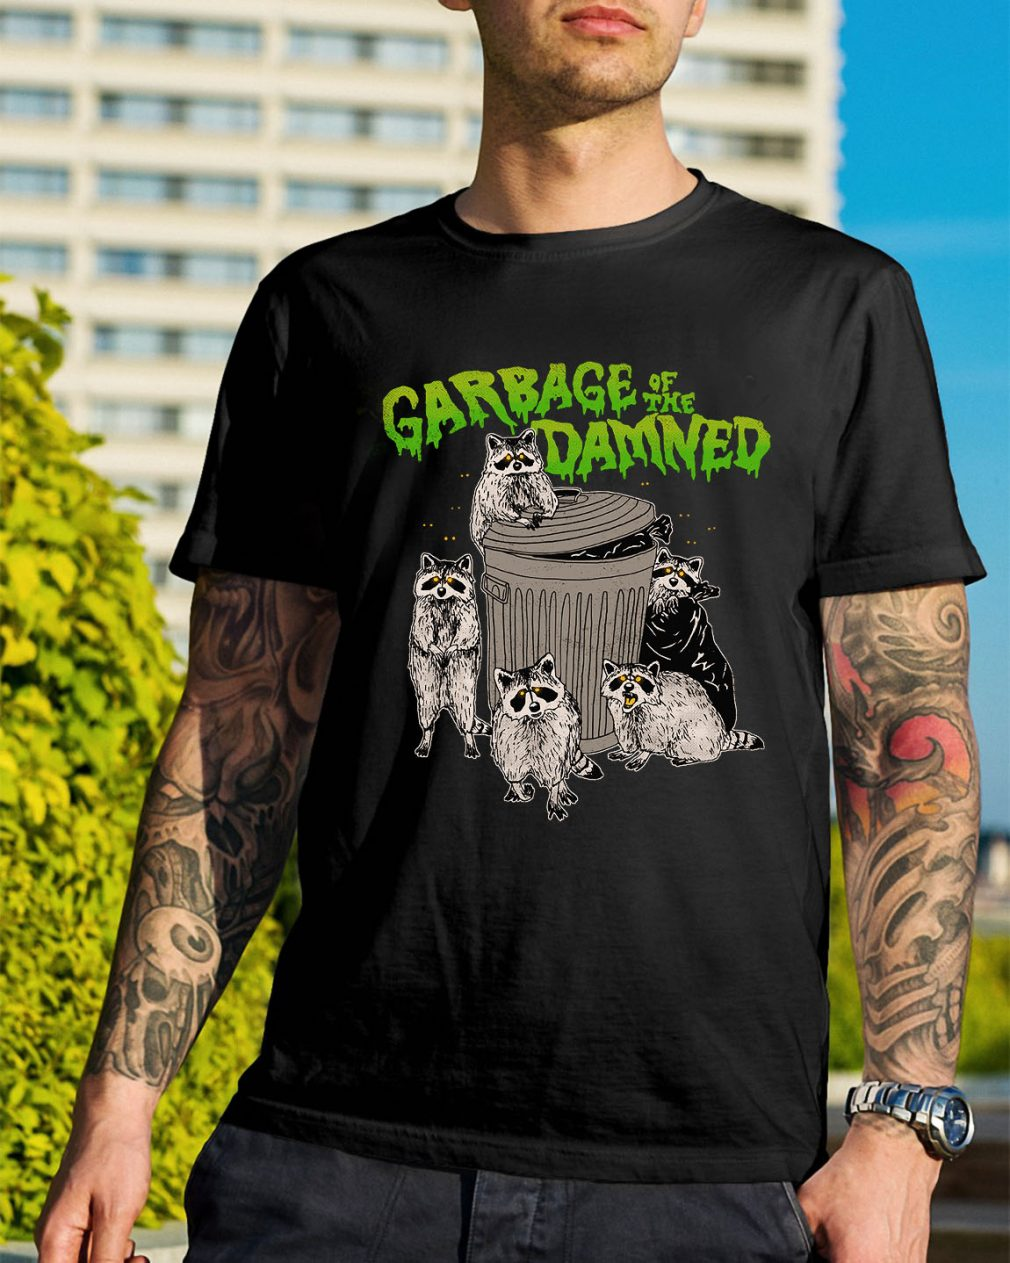 Woot garbage of the damned shirt